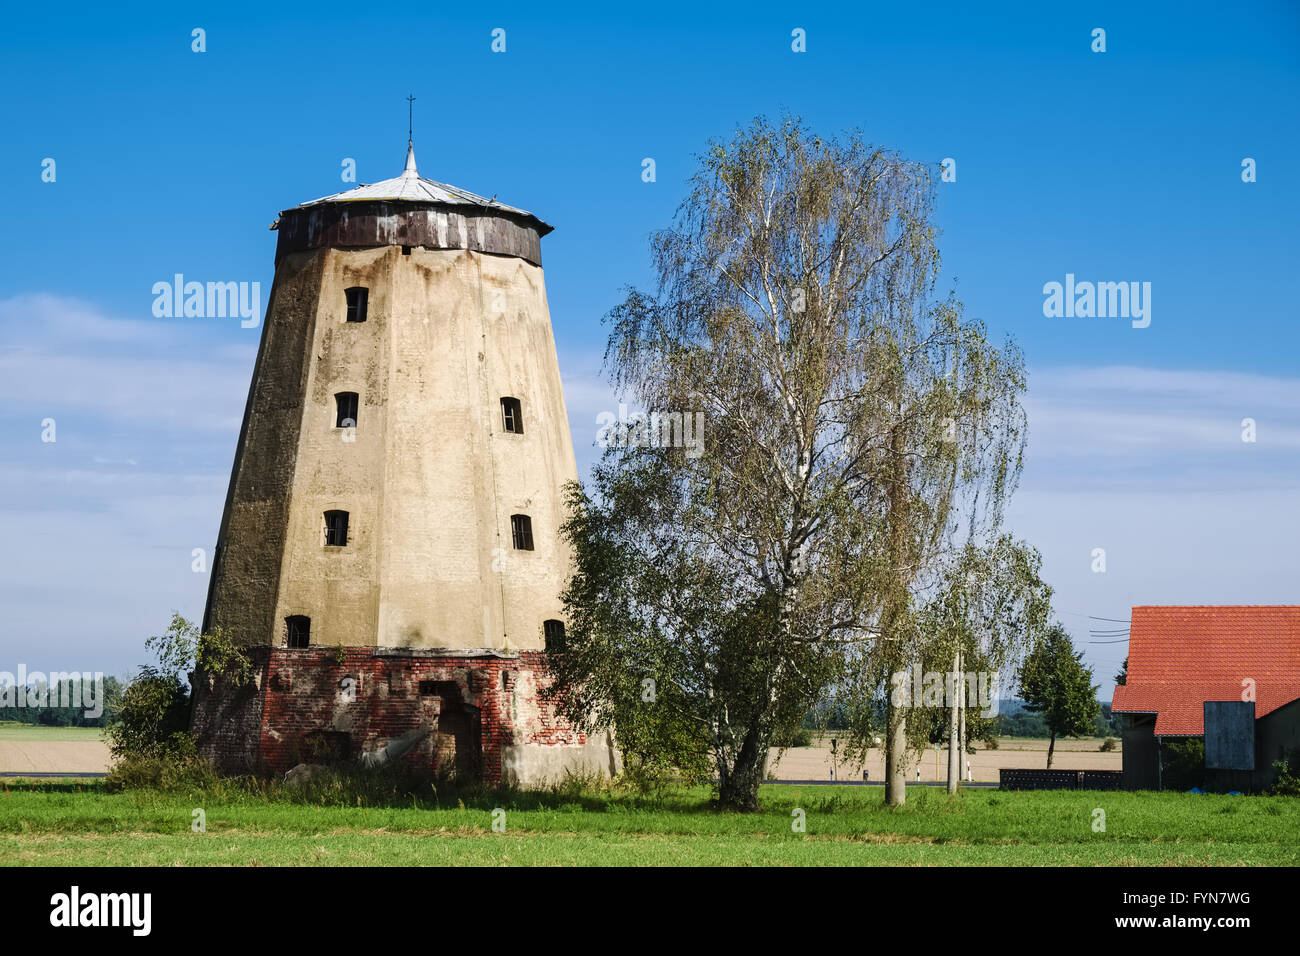 Windmill in Rosenthal near Dahme/Mark, Germany - Stock Image